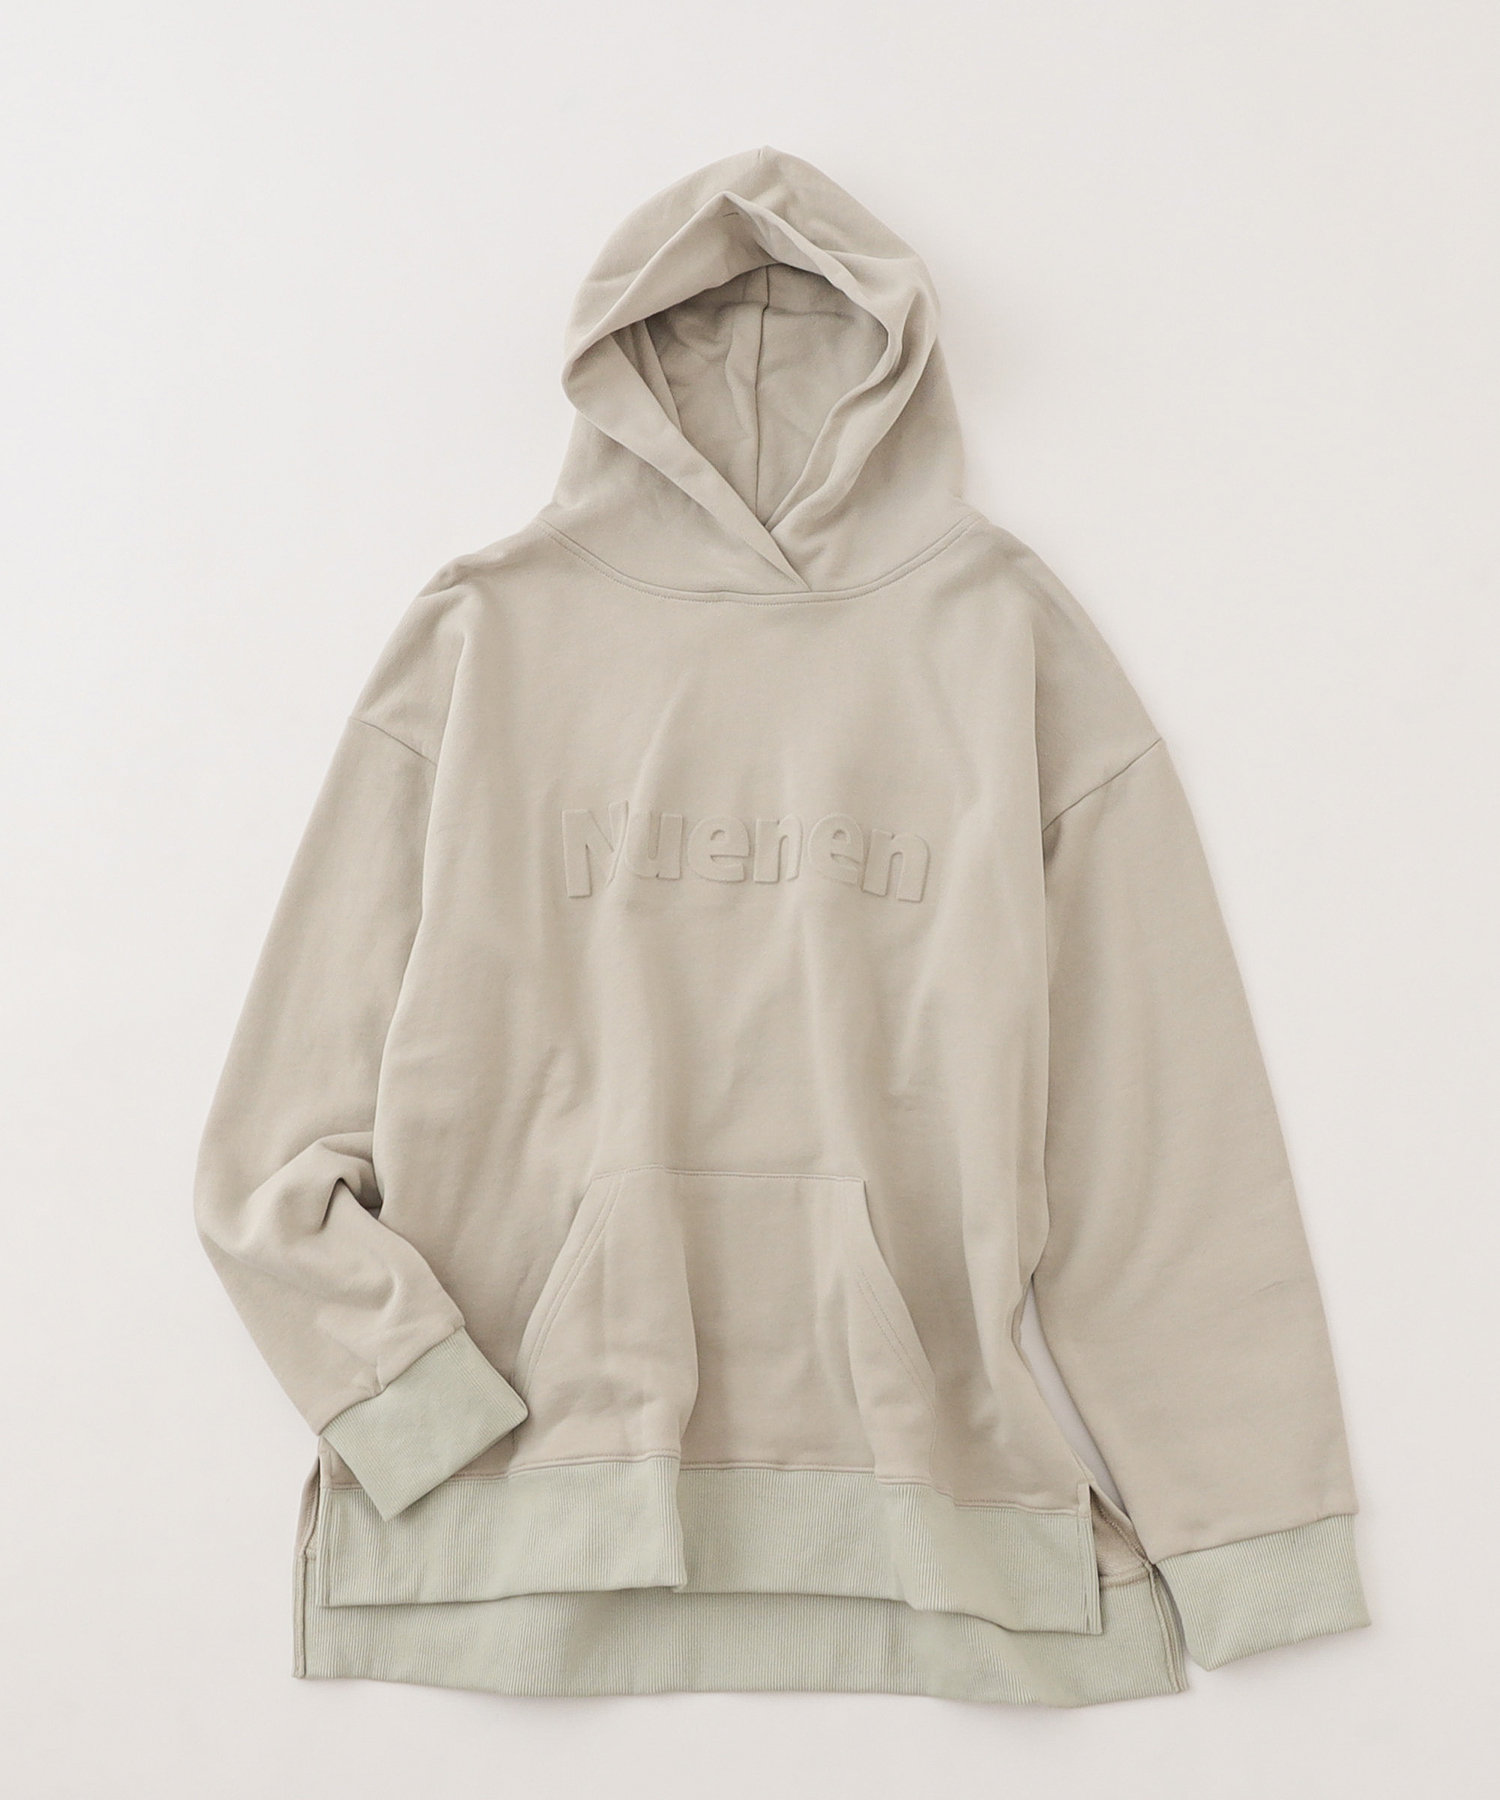 NICE CLAUP OUTLET(ナイスクラップ アウトレット) 【NUNIFE】Nuenen エンボスパーカー